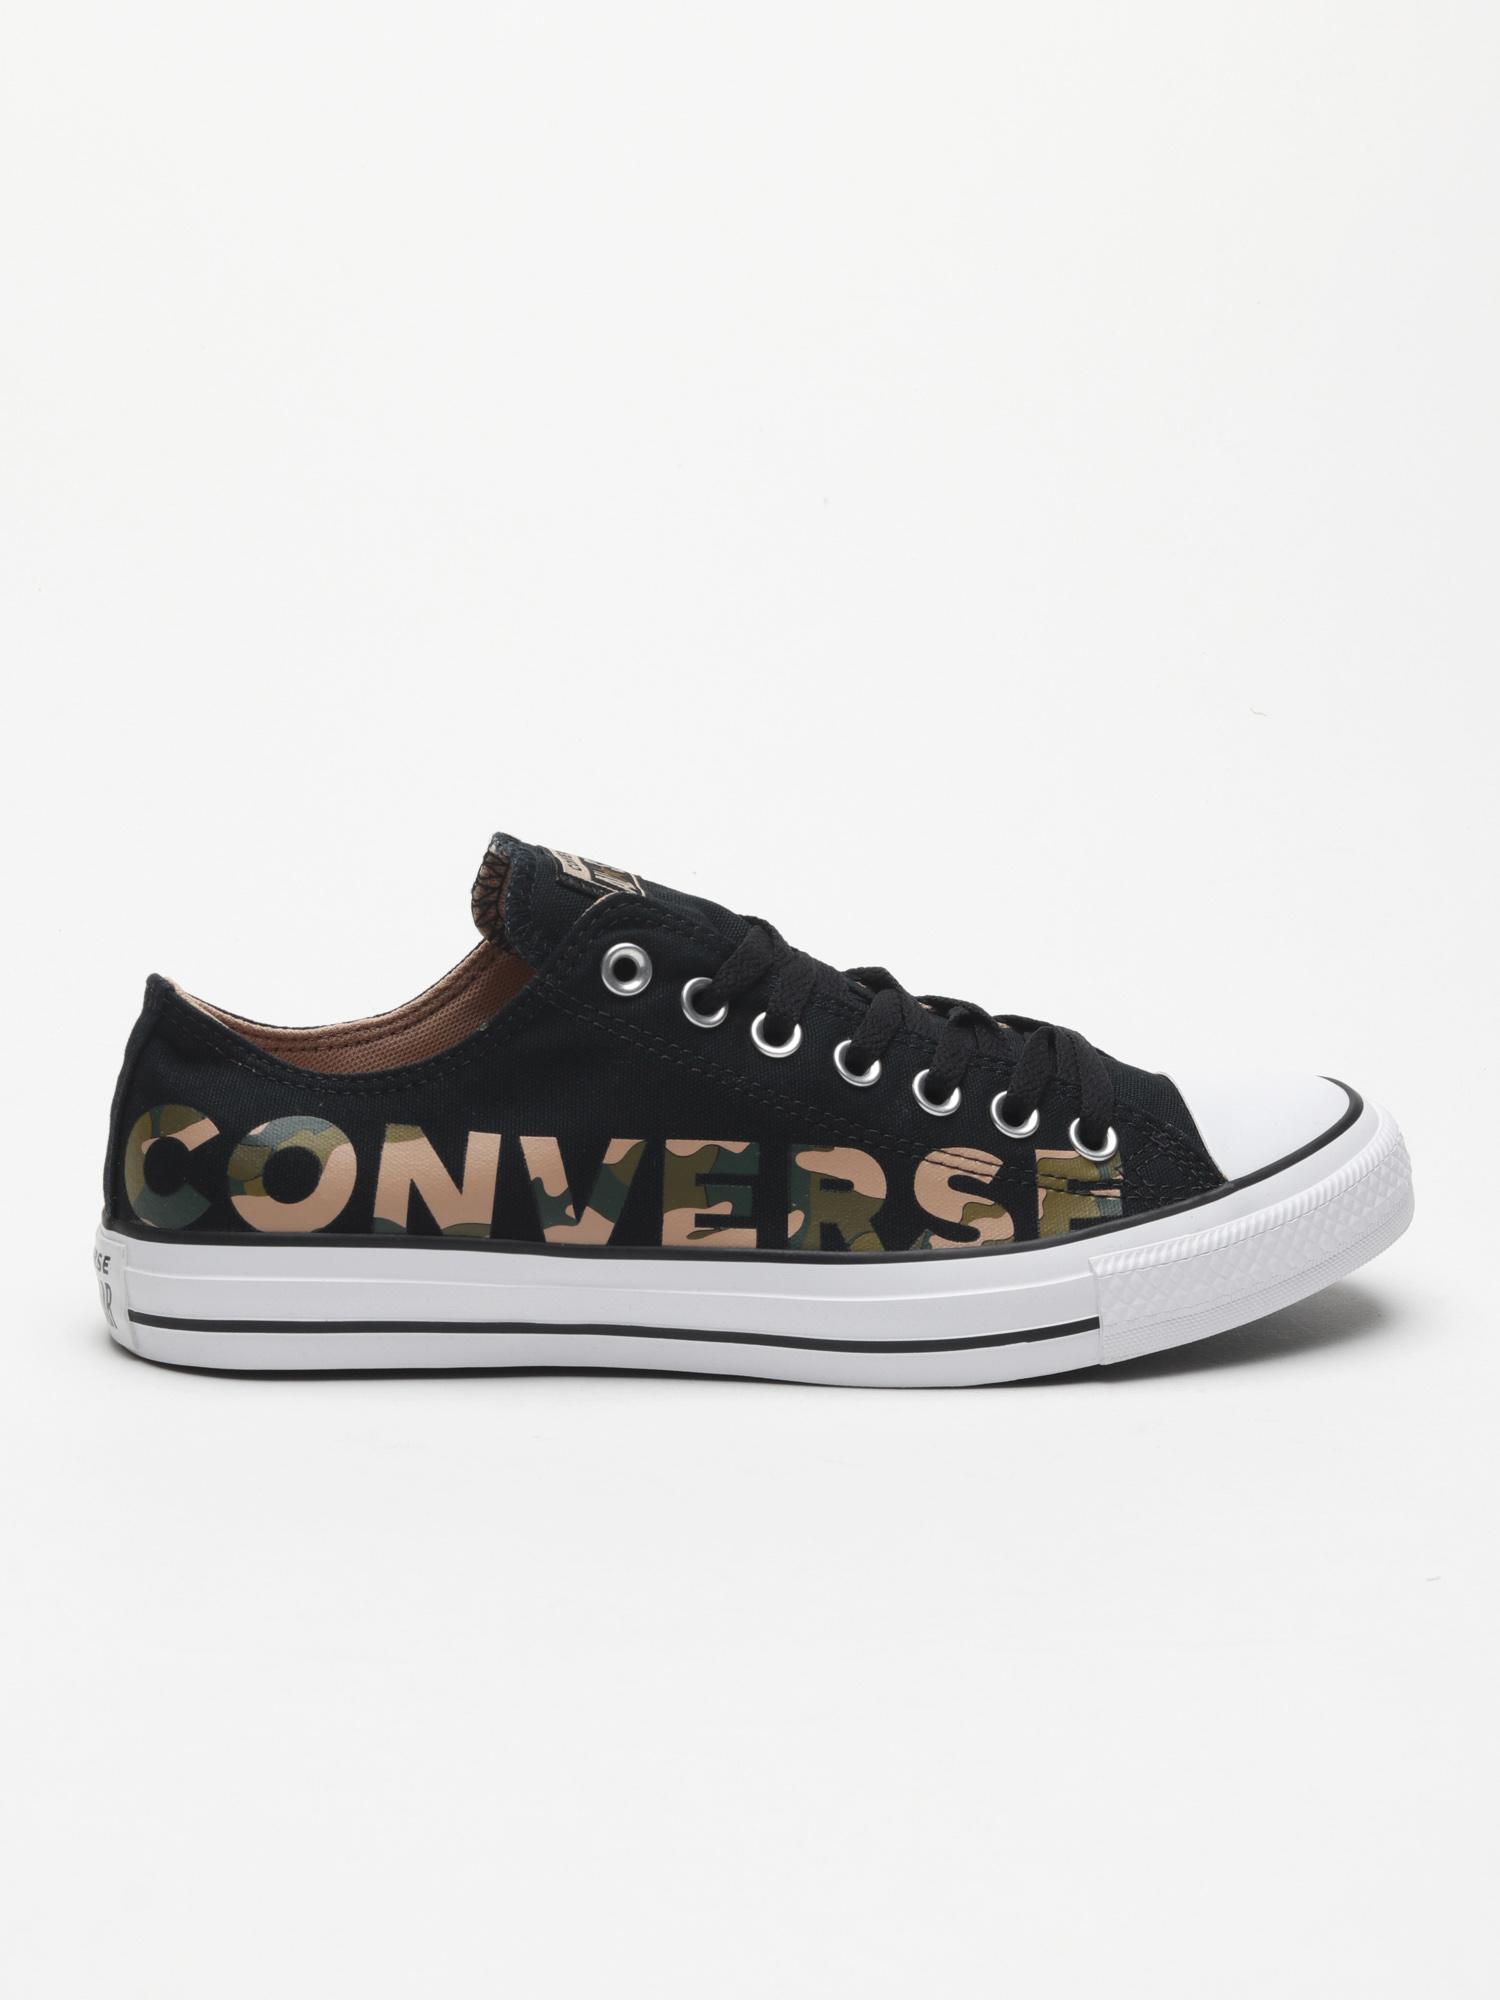 Boty Converse Chuck Taylor All Star Canvas Wordmark (1)